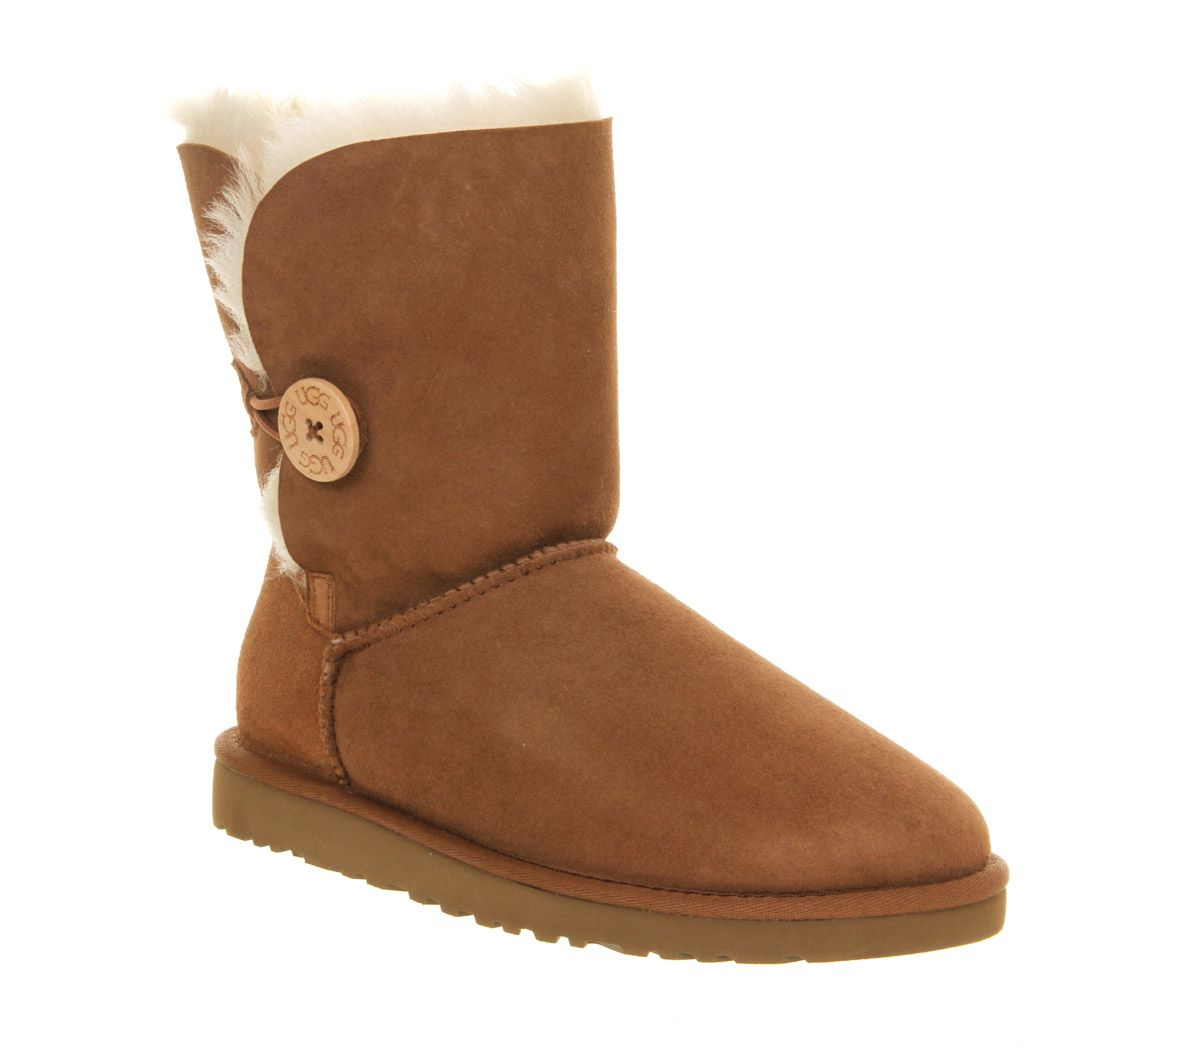 UGG Australia Bailey Button Chestnut - Ankle Boots. Dear abundant universe,  I would like